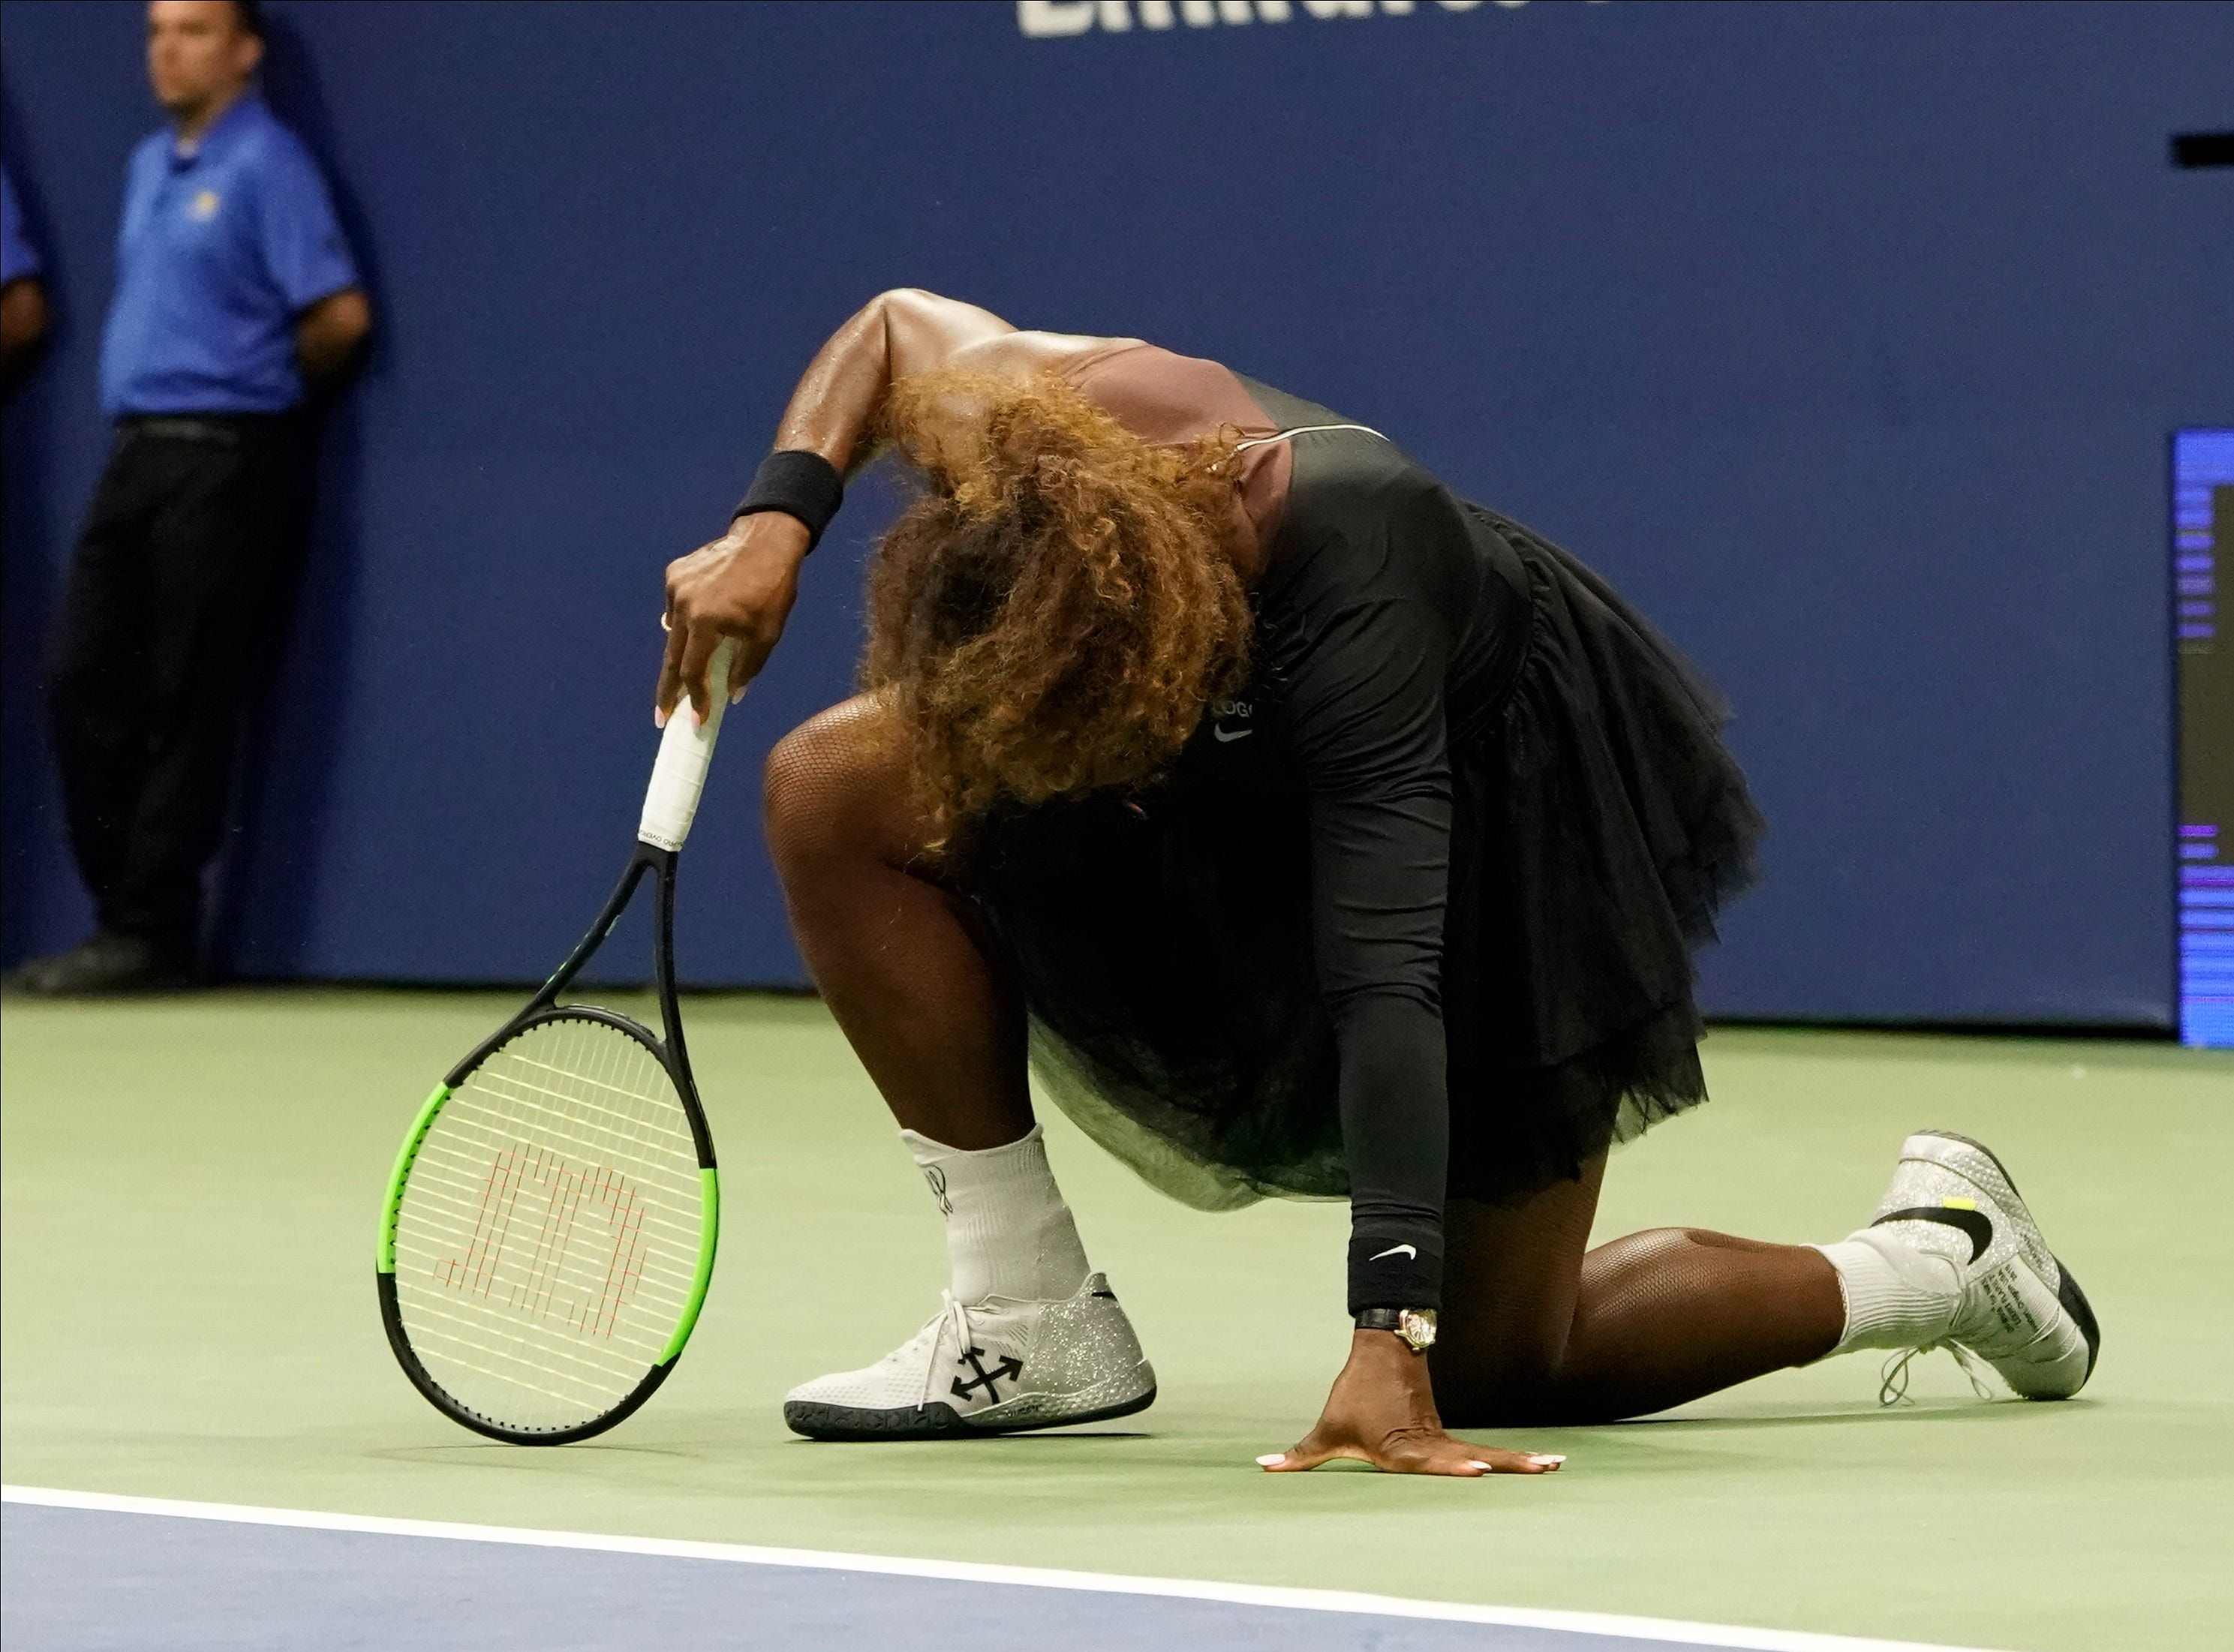 Serena Williams falls after twisting her ankle.